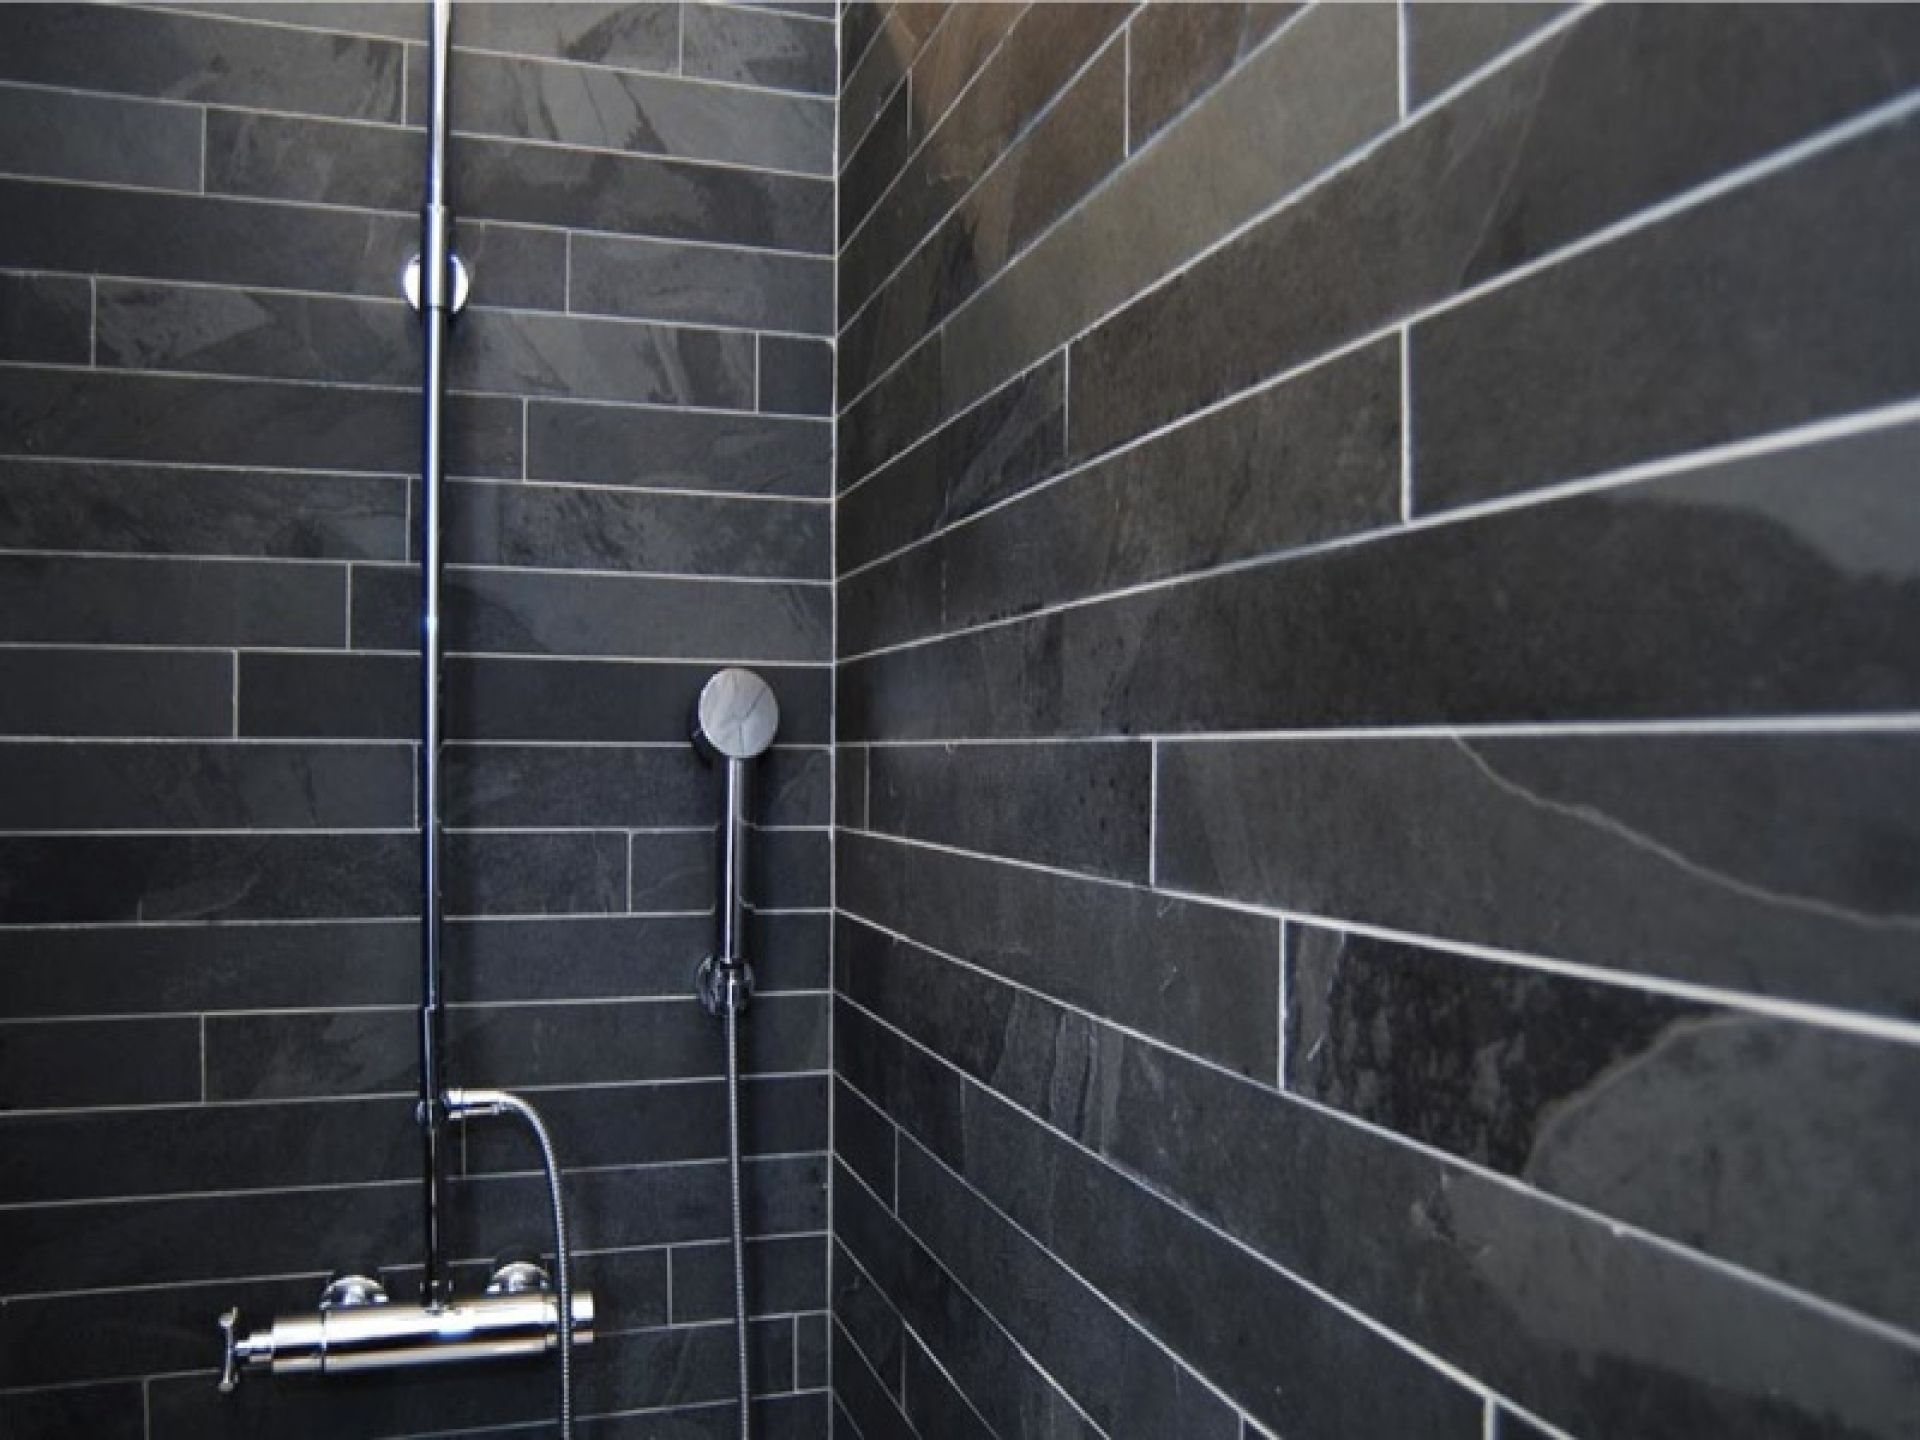 Home design and interior design gallery of beautiful for Bathroom ideas black tiles